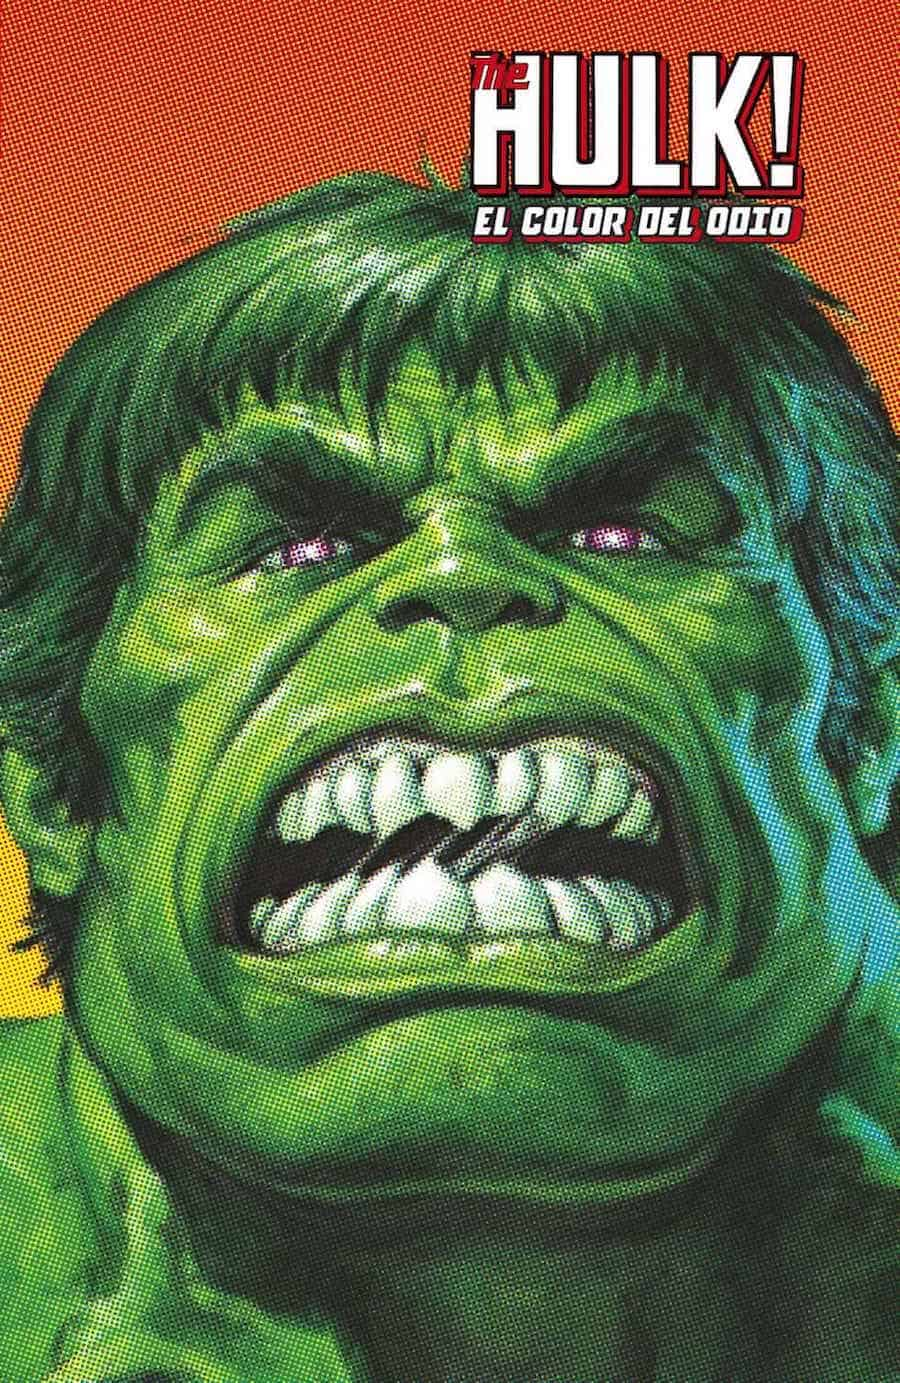 THE  HULK 01  (MARVEL LIMITED EDITION). EL COLOR DEL ODIO